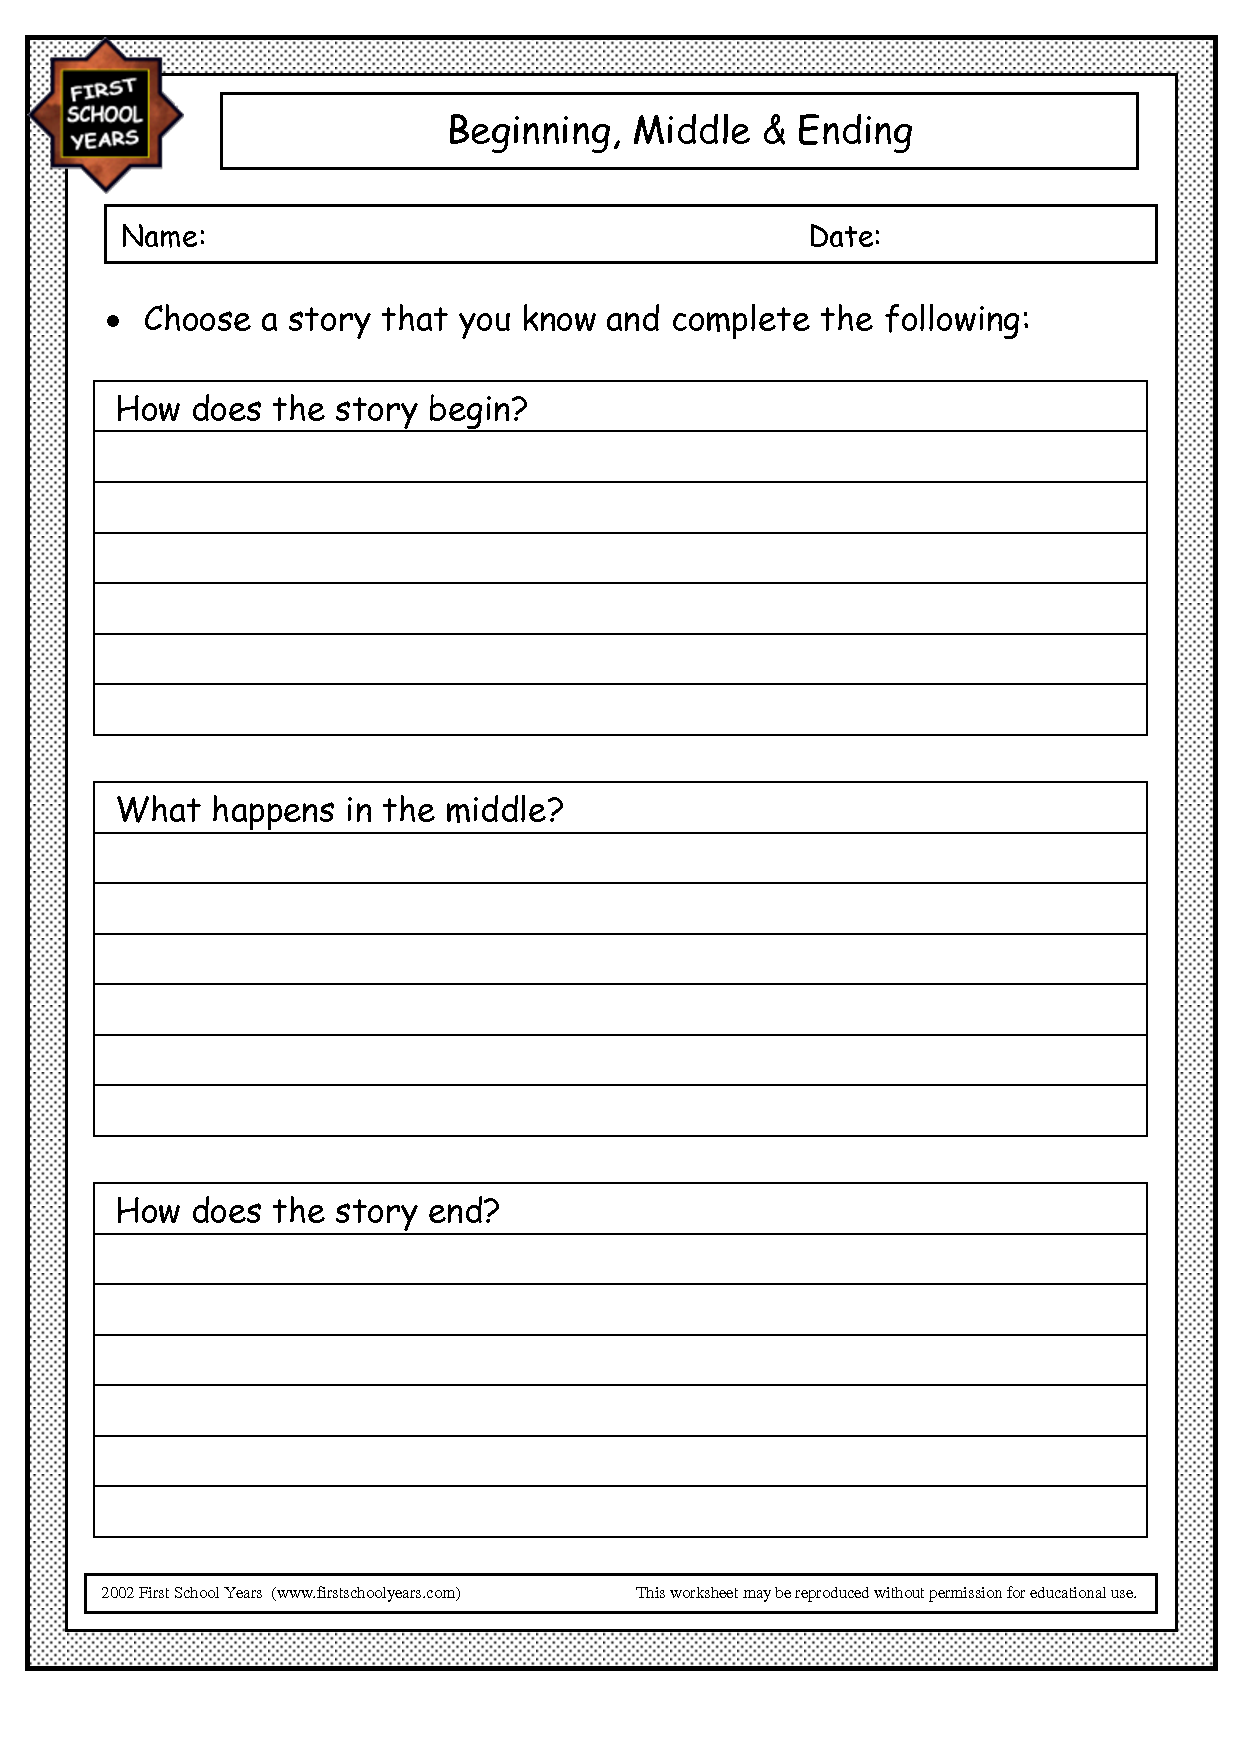 Beginning Middle End Worksheet Kindergarten images | Rachael ...